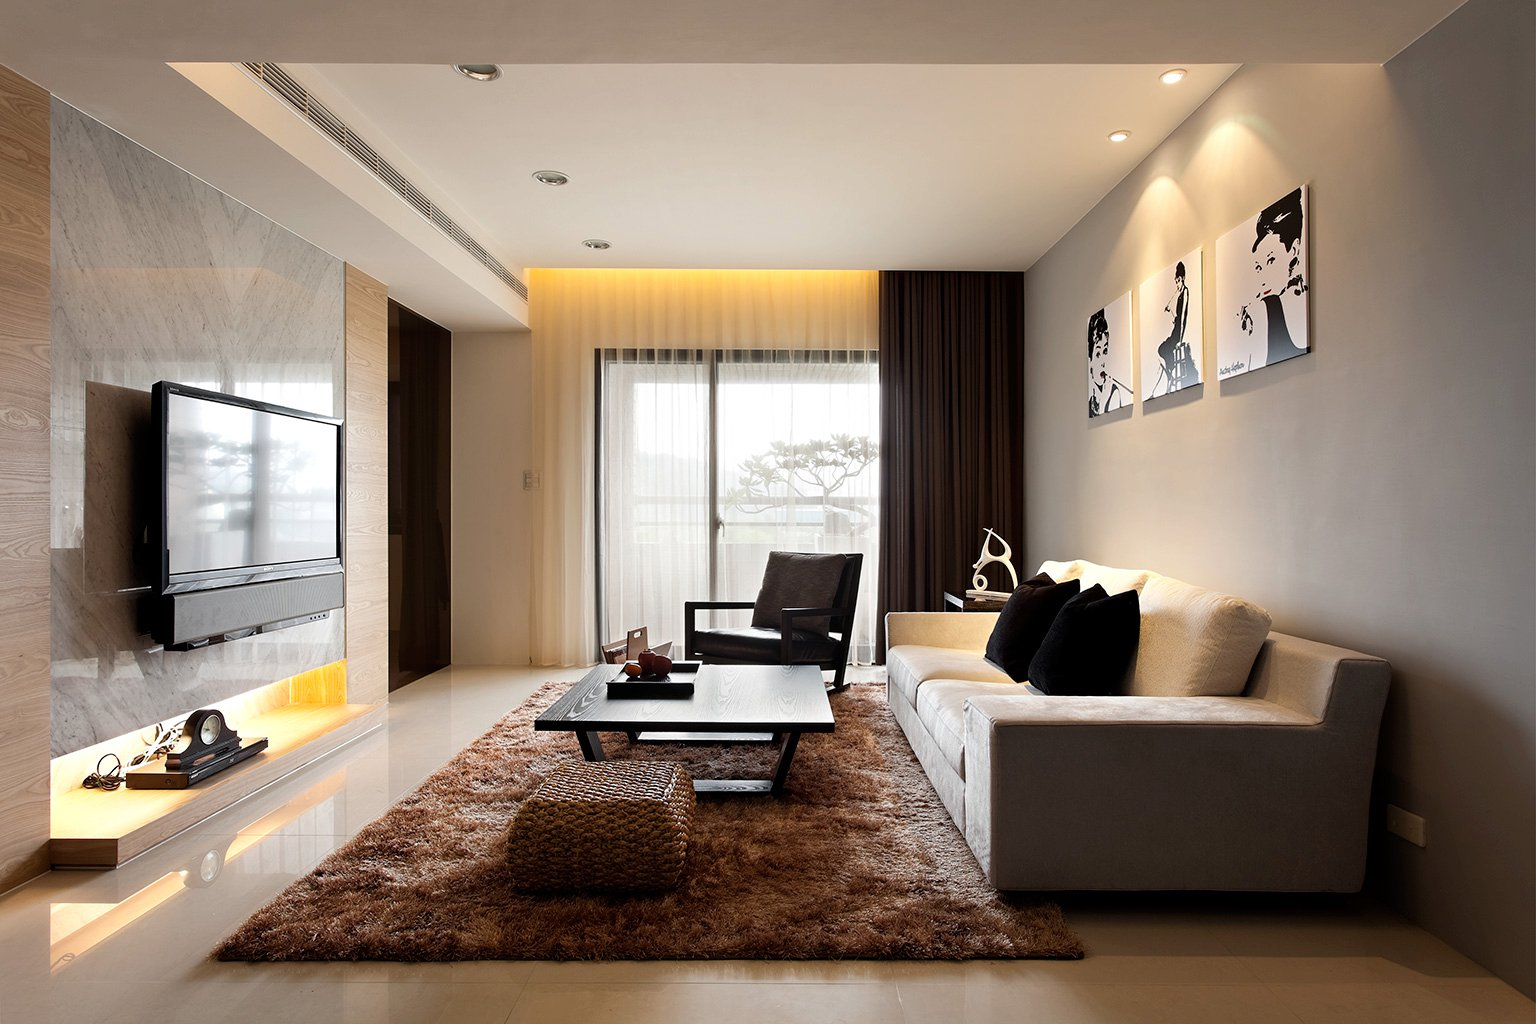 Living Room How To Decorate A Modern Living Room modern living room design ideas contemporary 19 ideas